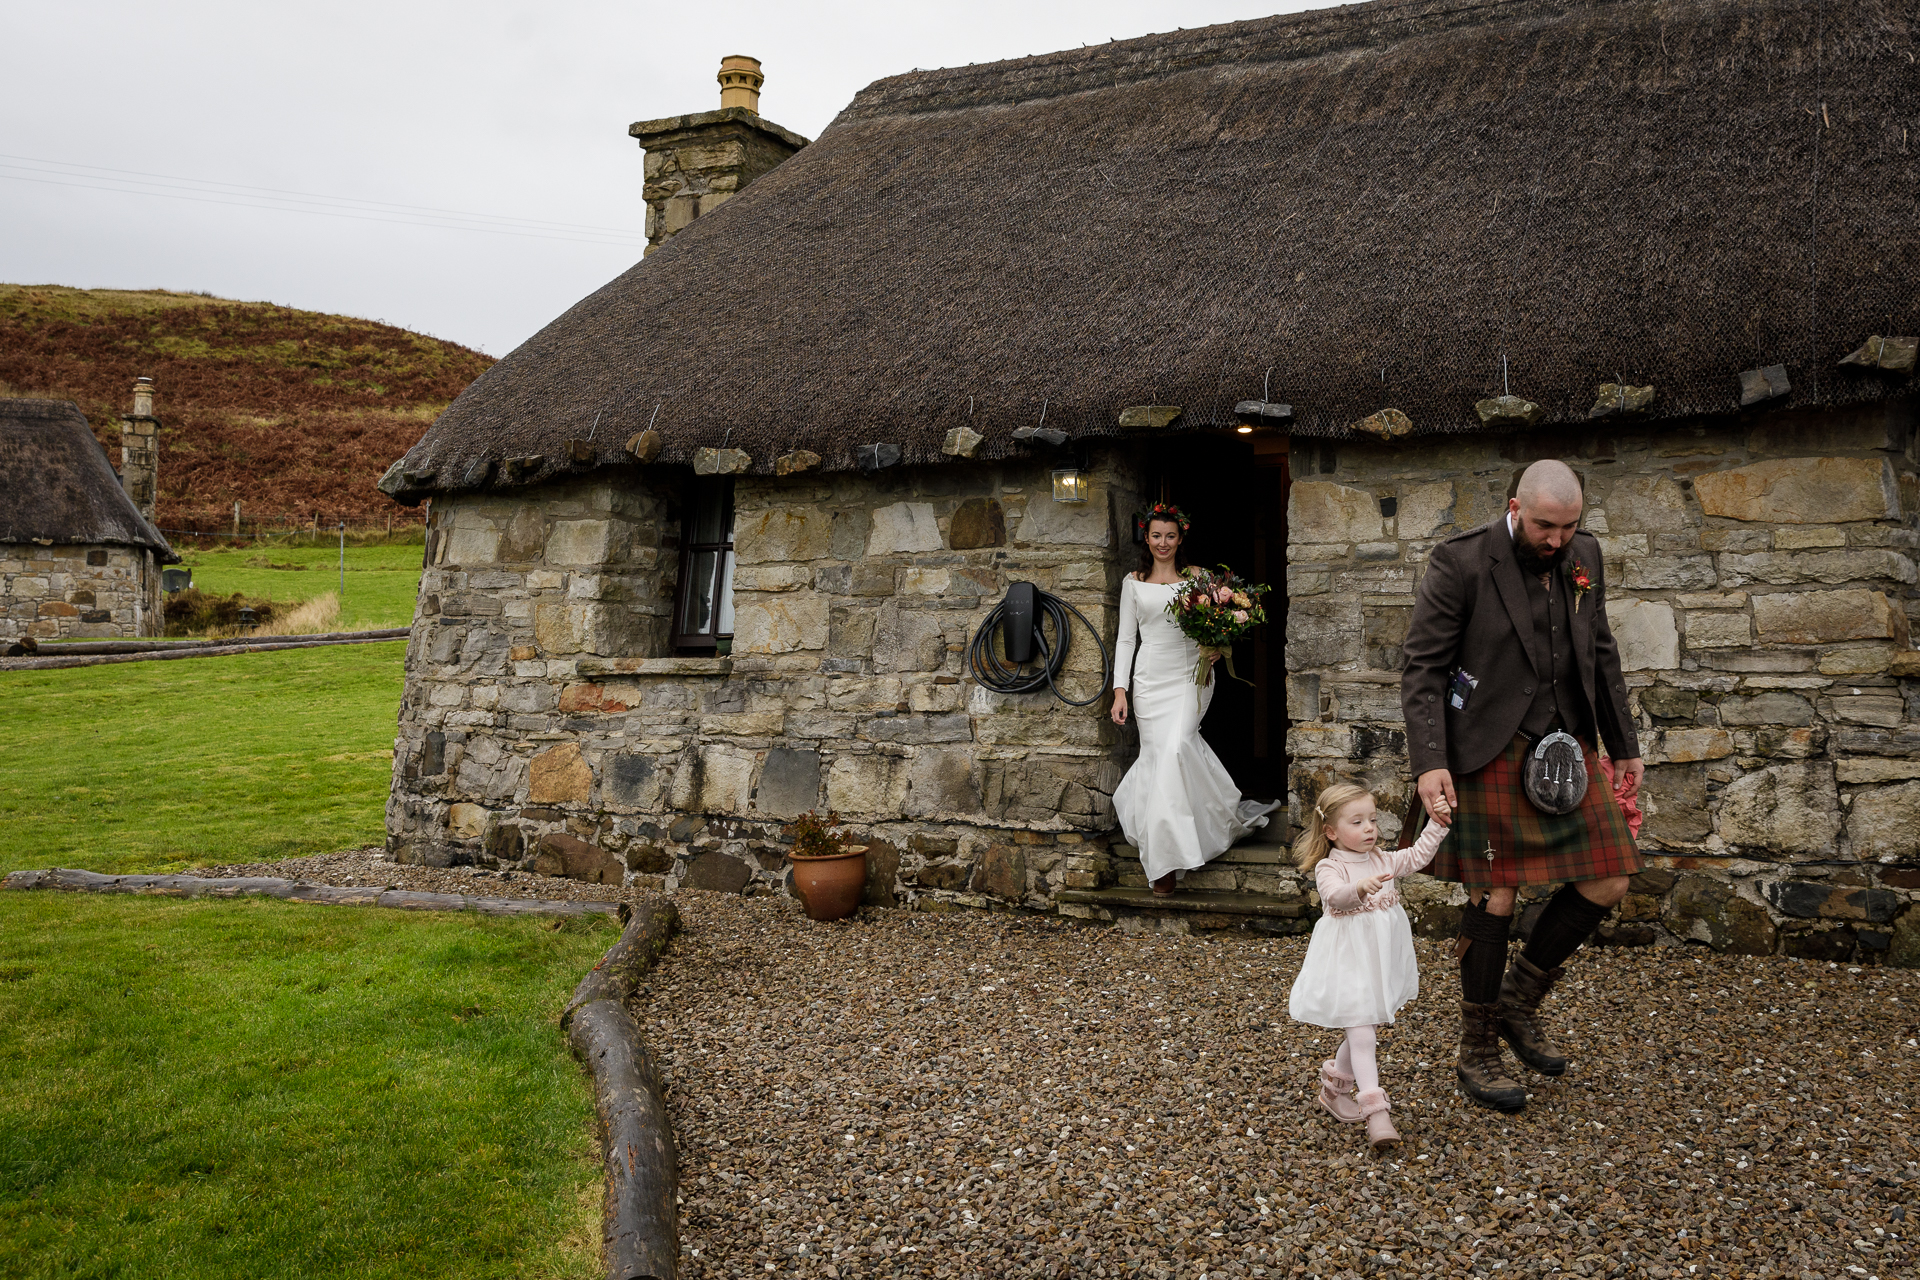 Isle of Skye, Scotland, UK Elopement Picture | A Scottish Highlands couple left their beautiful traditional Scottish stone cottage, where they had been staying, to drive down to the pier in the tiny village of Elgol